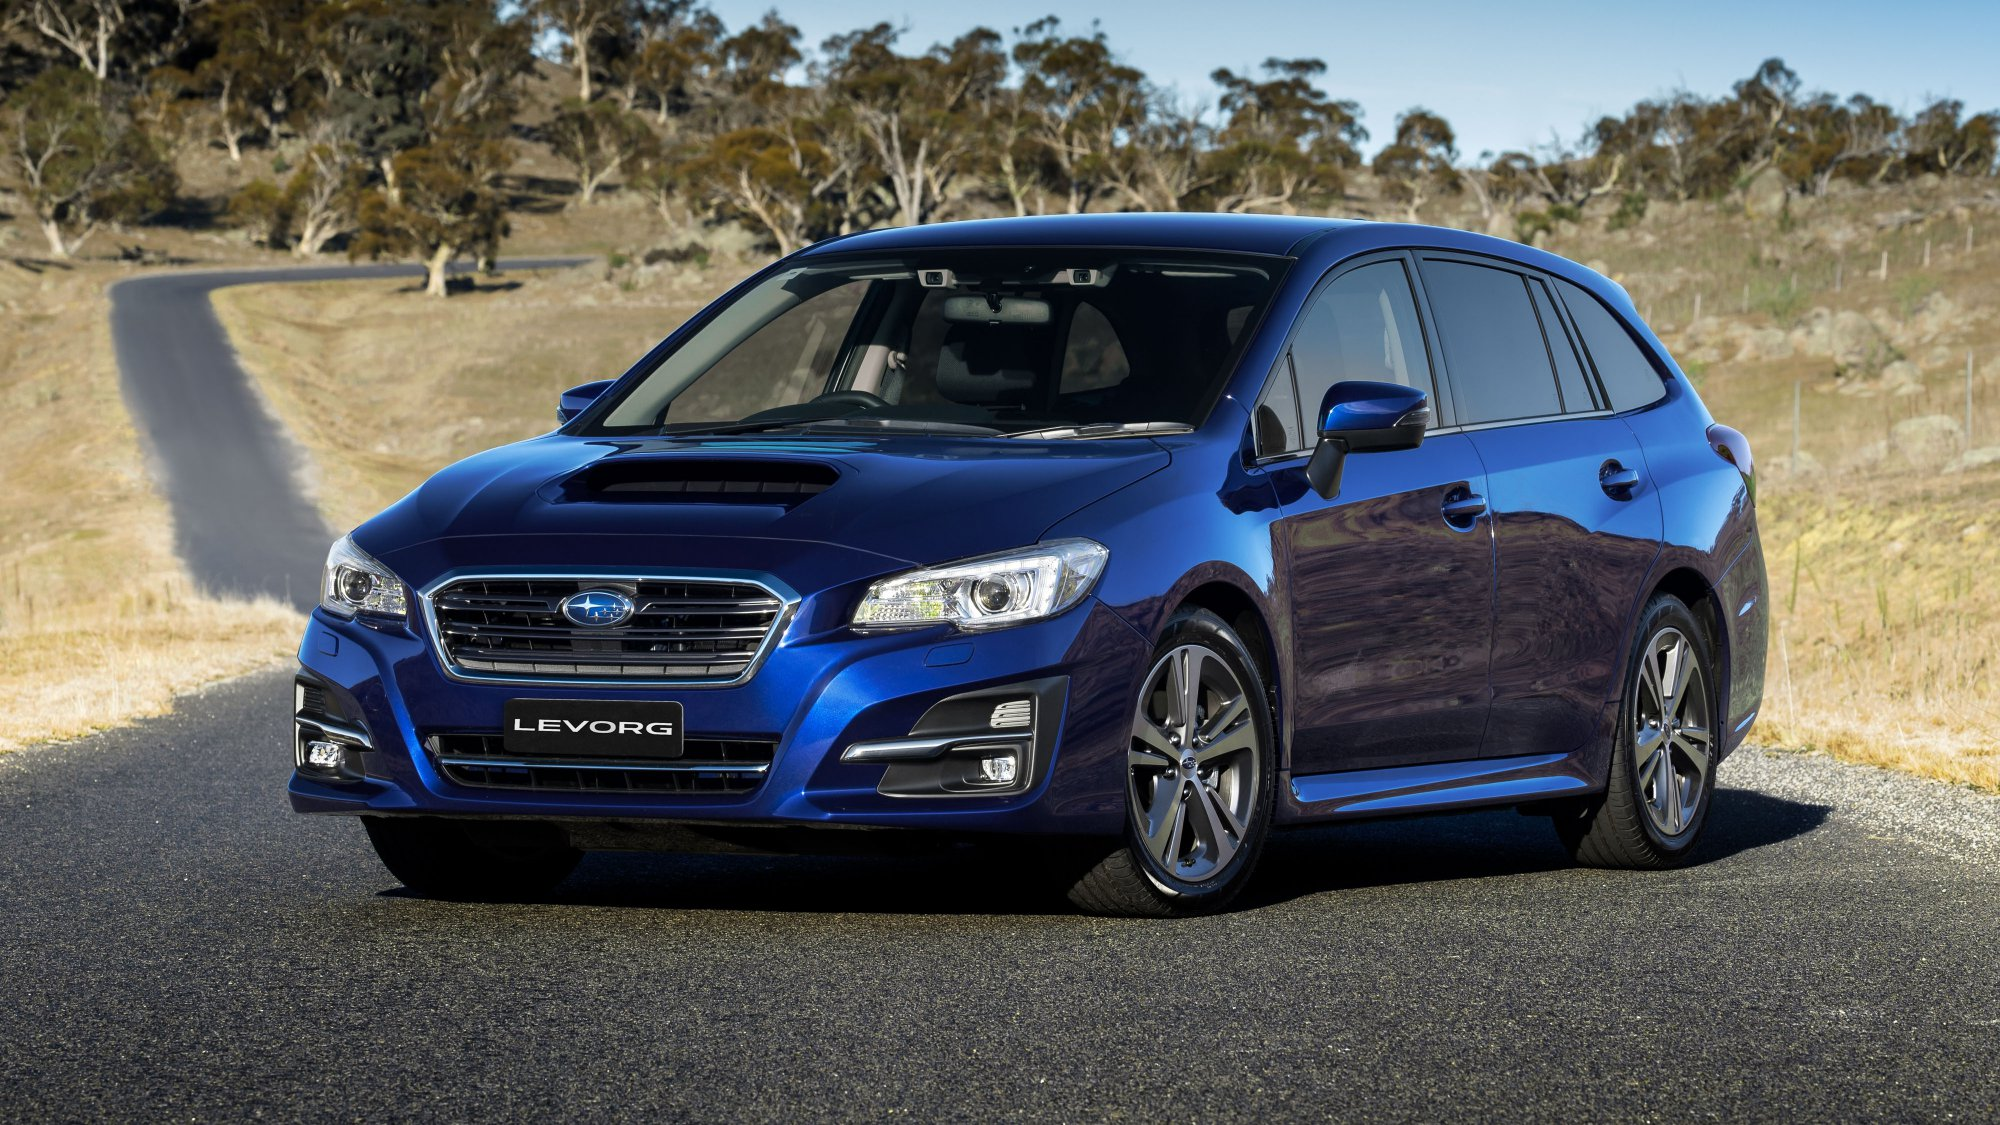 news subaru updates 2018 levorg lineup lower price of admission. Black Bedroom Furniture Sets. Home Design Ideas